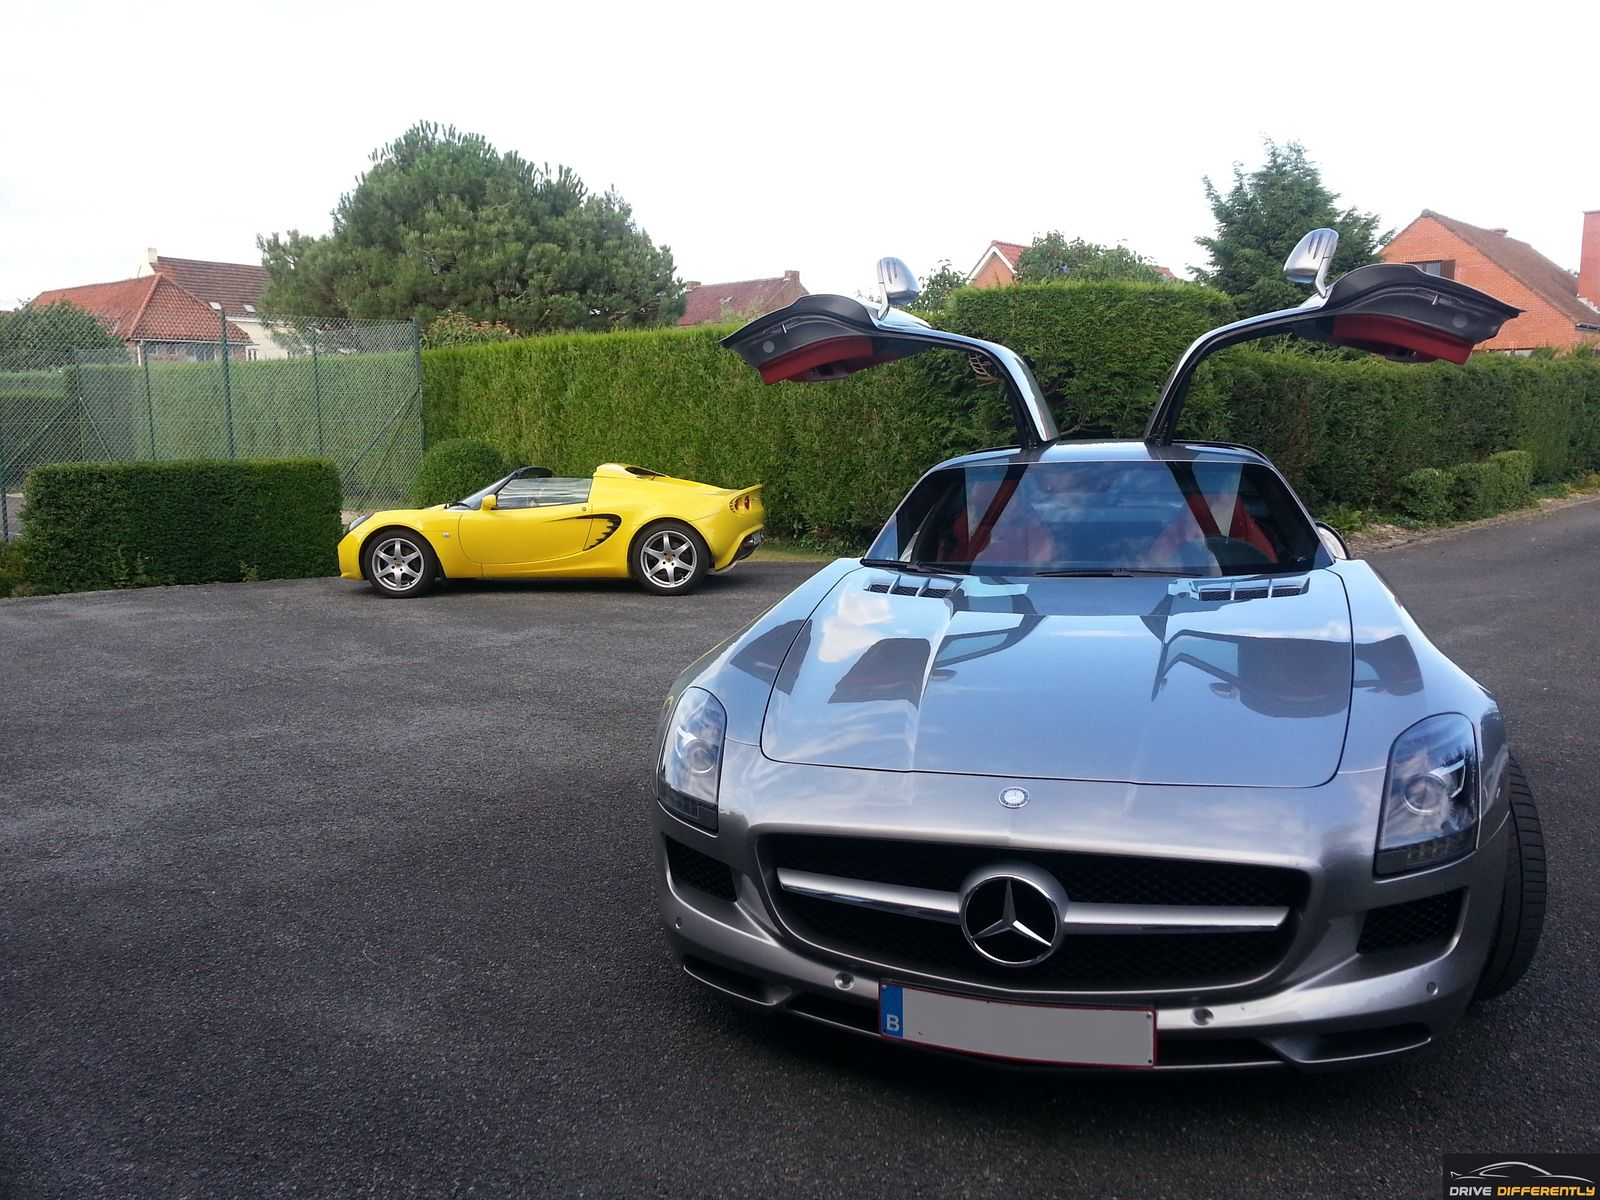 drive-differently-sls-elise-356-2-1600x1200